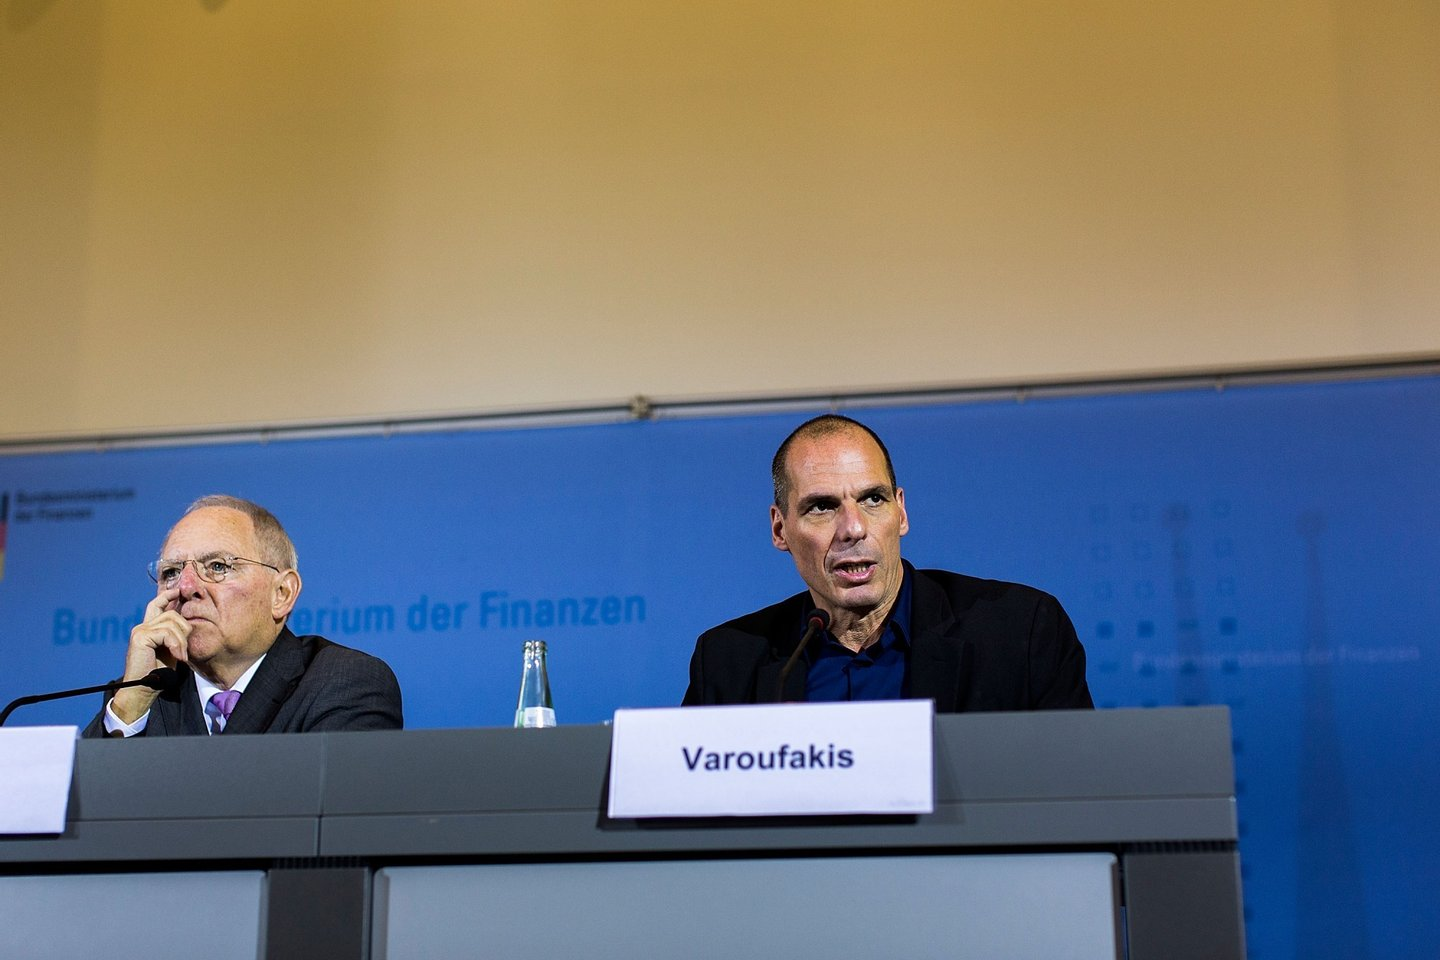 BERLIN, GERMANY - FEBRUARY 05:  New Greek Finance Minister Yanis Varoufakis (R) and German Finance Minister Wolfgang Schaeuble speak to the media following talks on February 5, 2015 in Berlin, Germany. Varoufakis is touring several European cities and yesterday met with Mario Draghi at the European Central Bank following announcements by the new Greek government to sharply alter its relationship with the troika of loan-giving entities.  (Photo by Carsten Koall/Getty Images)